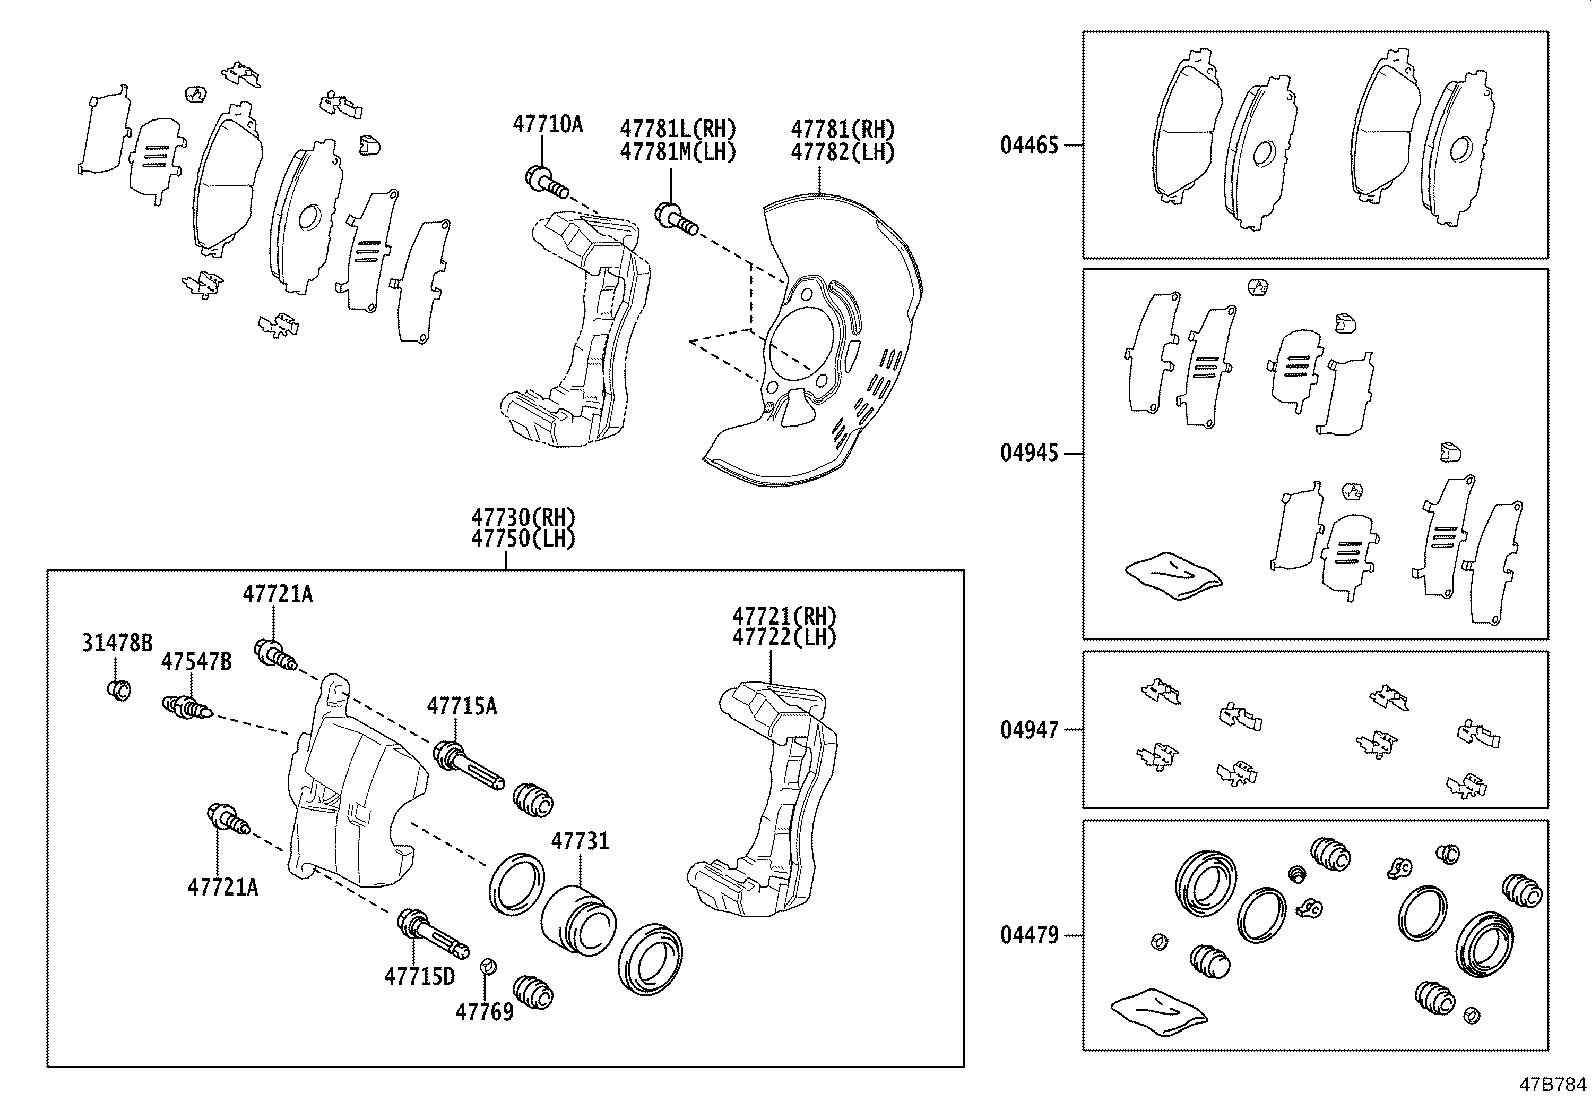 Diagram FRONT DISC BRAKE CALIPER & DUST COVER for your 2015 Toyota Tundra